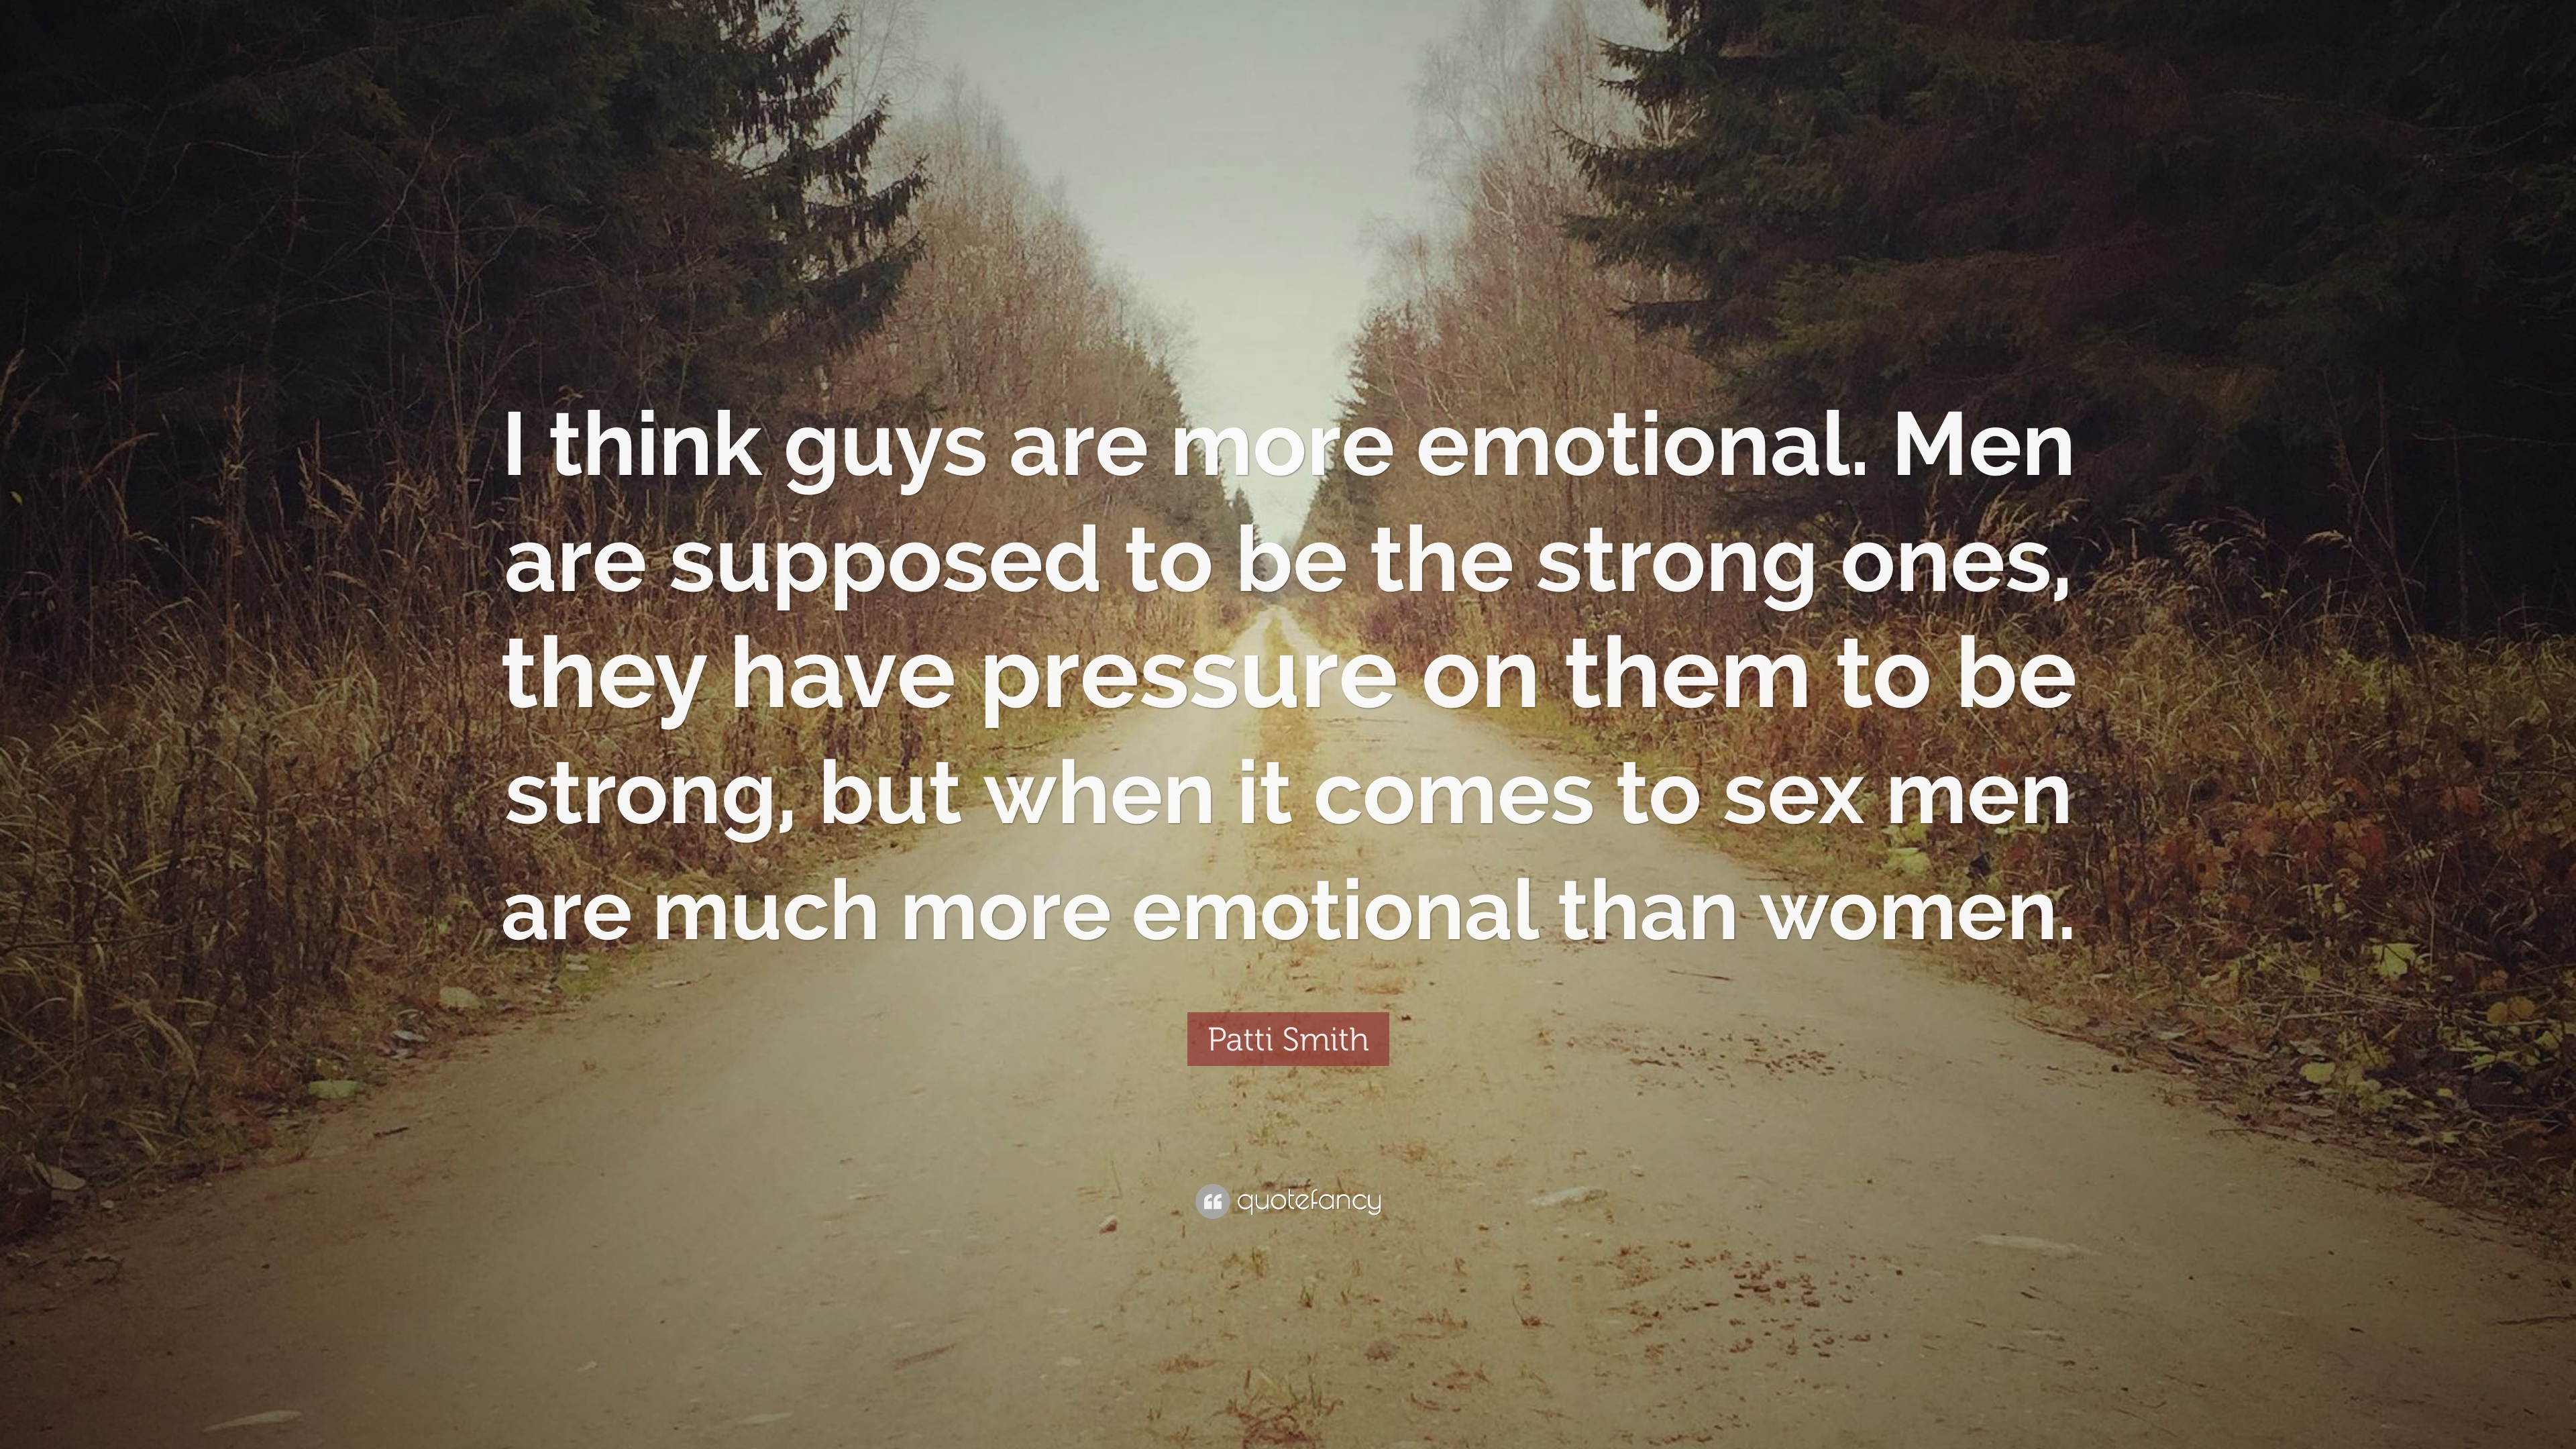 patti smith quote i think guys are more emotional men are